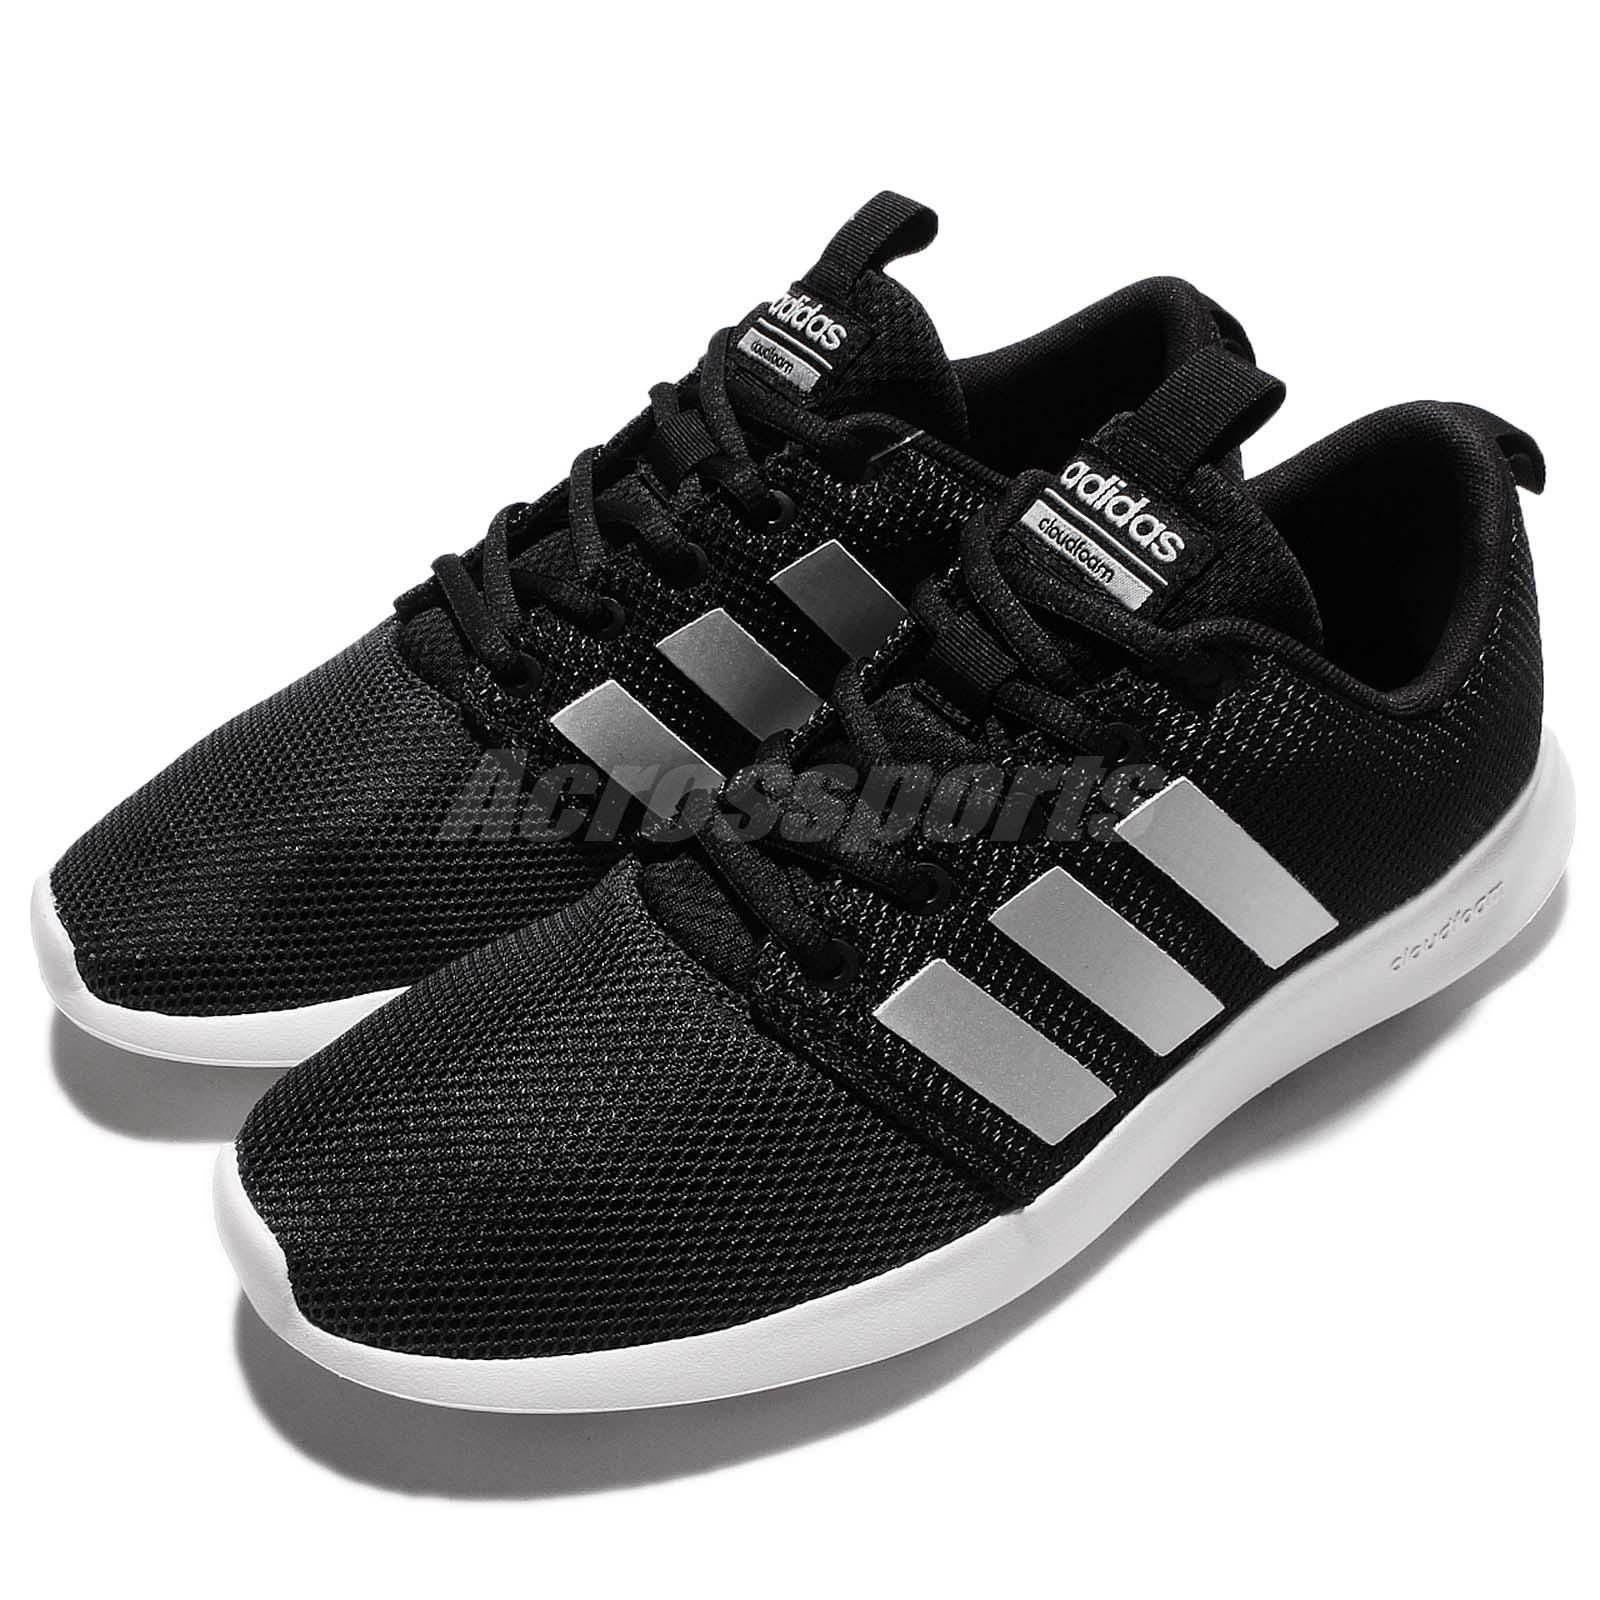 523a64b205d00 adidas Neo Cloudfoam Swift Racer Black White Men Running Shoes Sneakers  AW4154